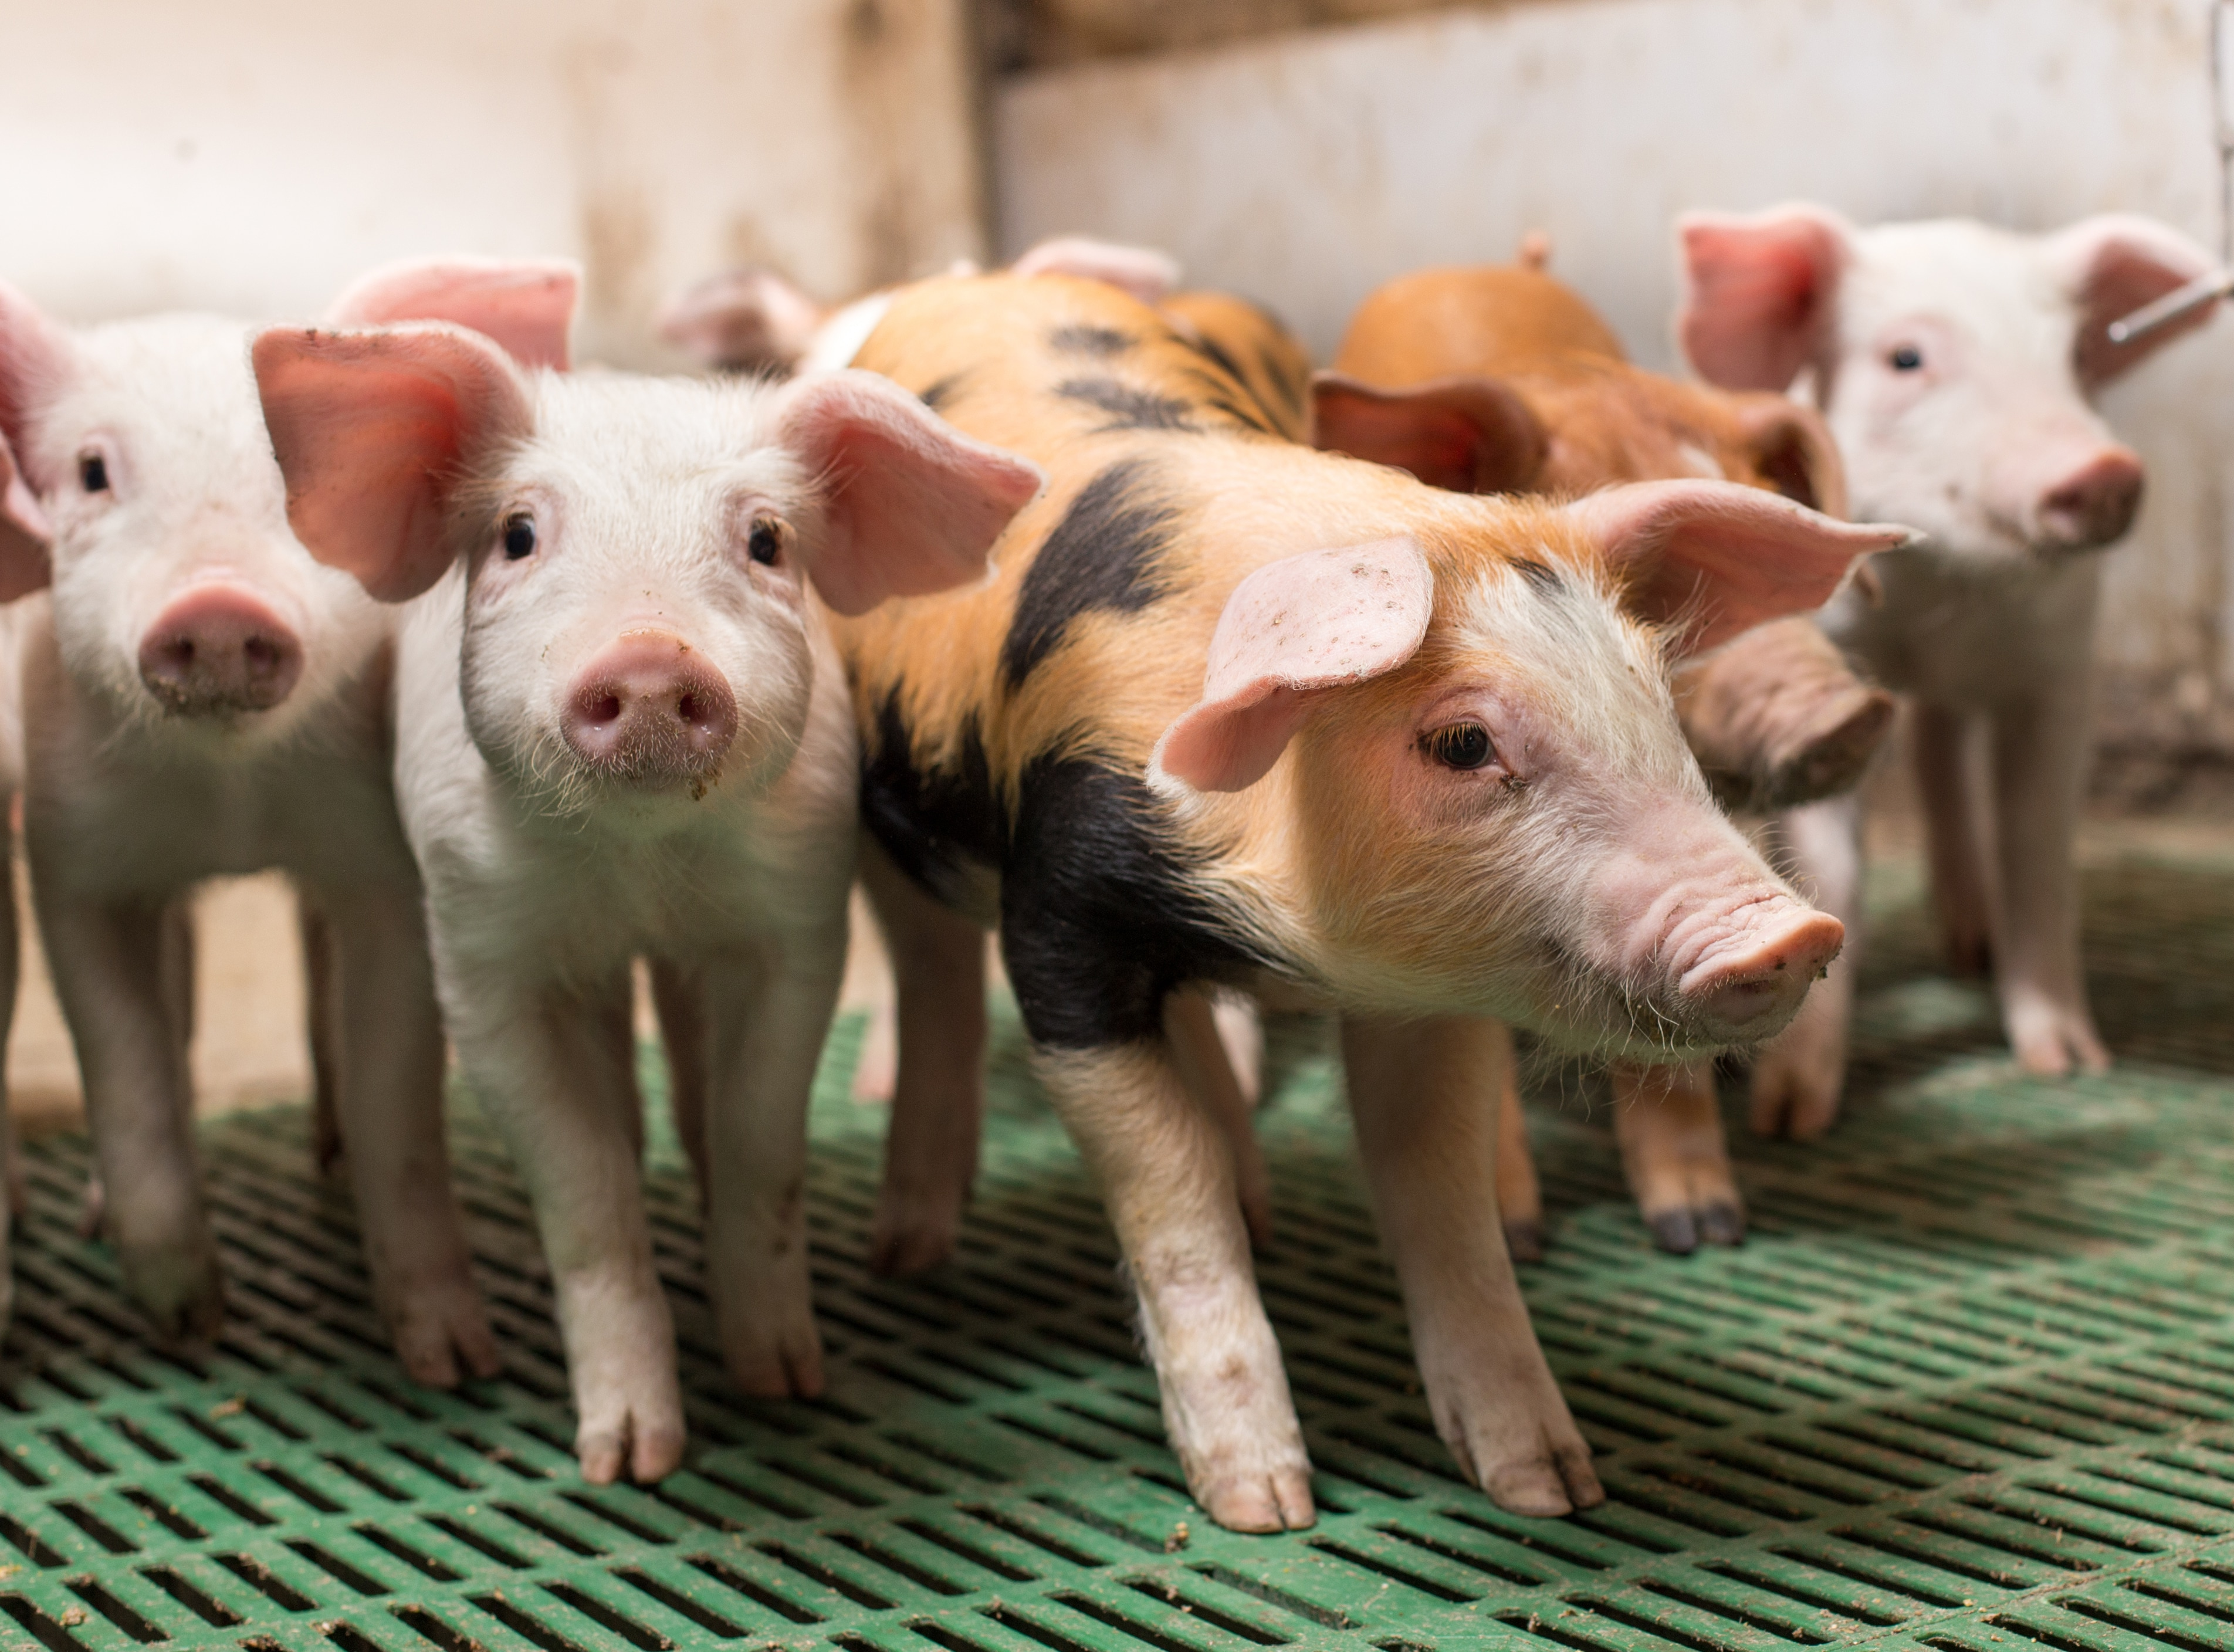 Piglets fed with fermented rapeseed do better than those fed medicinal zinc (ZnO)